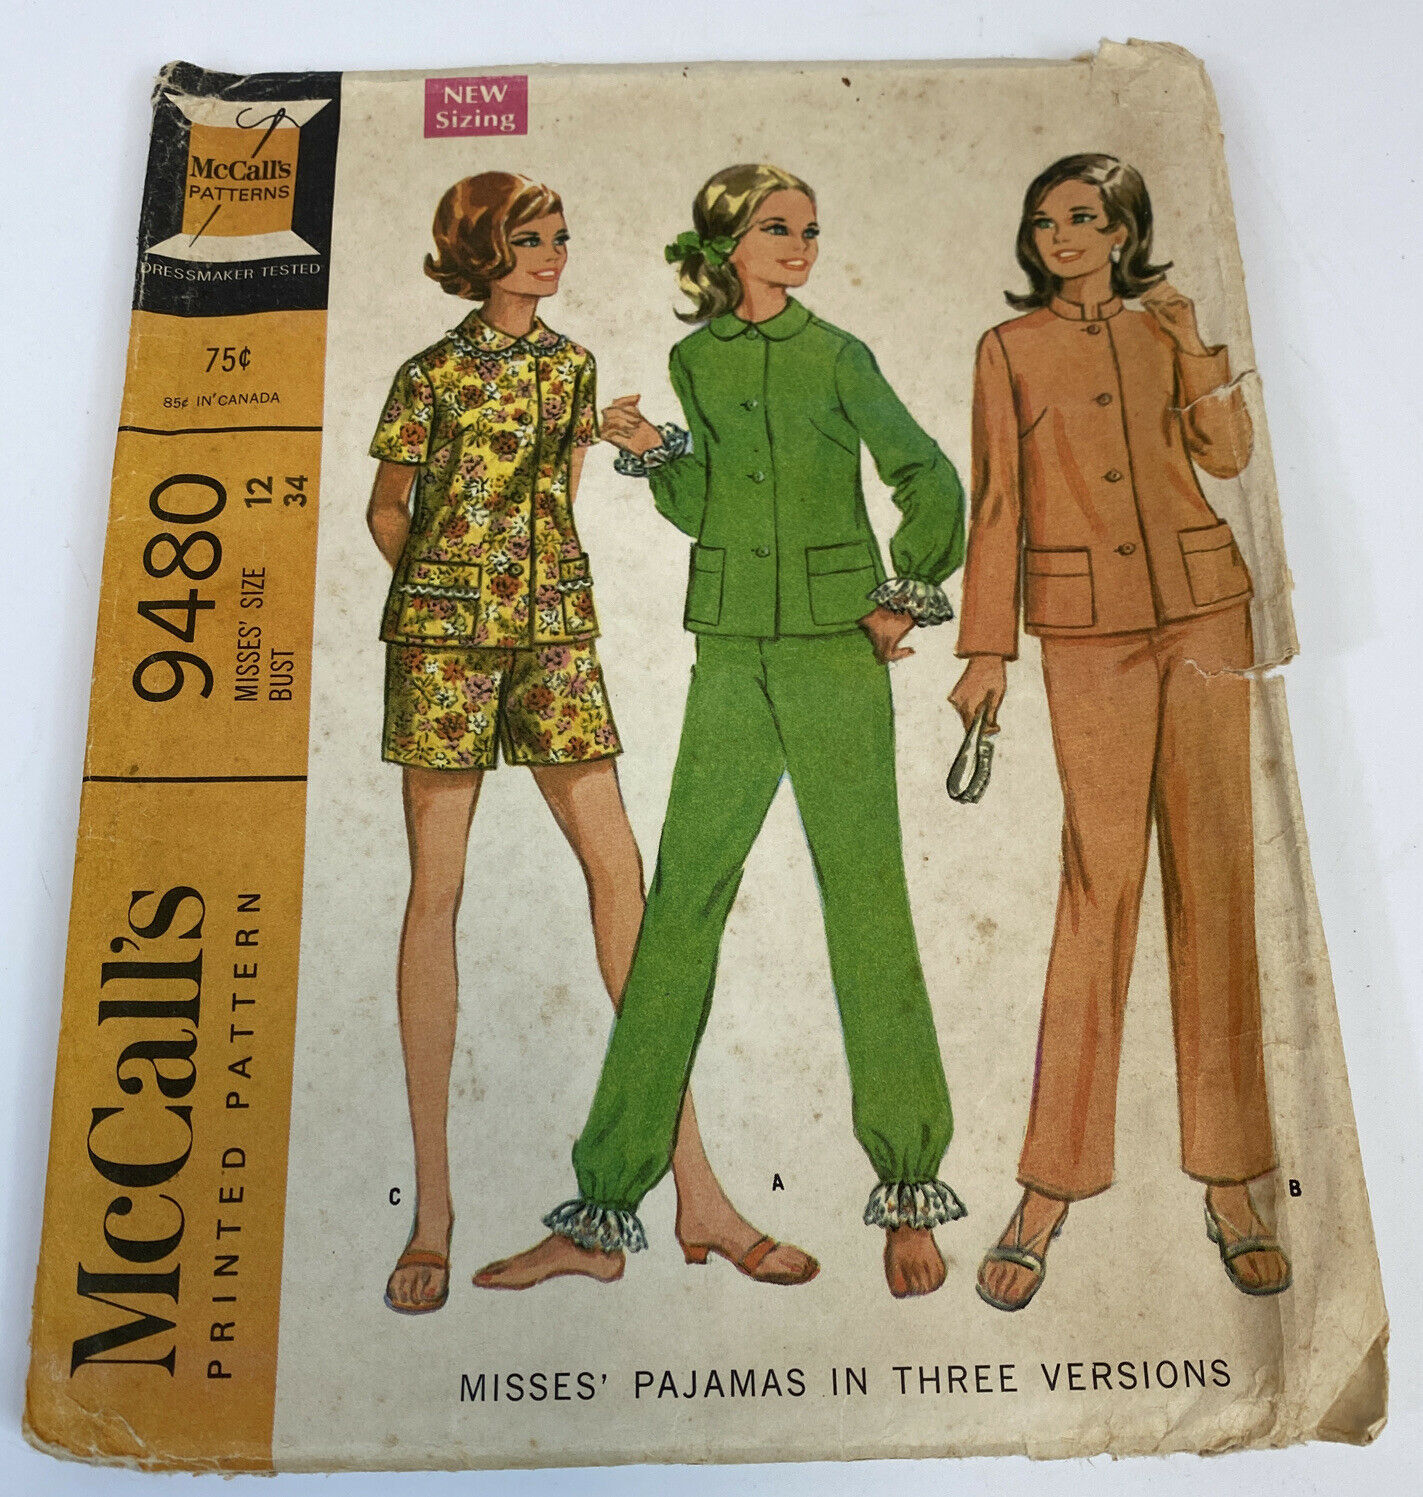 Primary image for McCalls Vintage Sewing Pattern 9480 1960's Size 12 Bust 34 Pajamas 3 Ways RARE